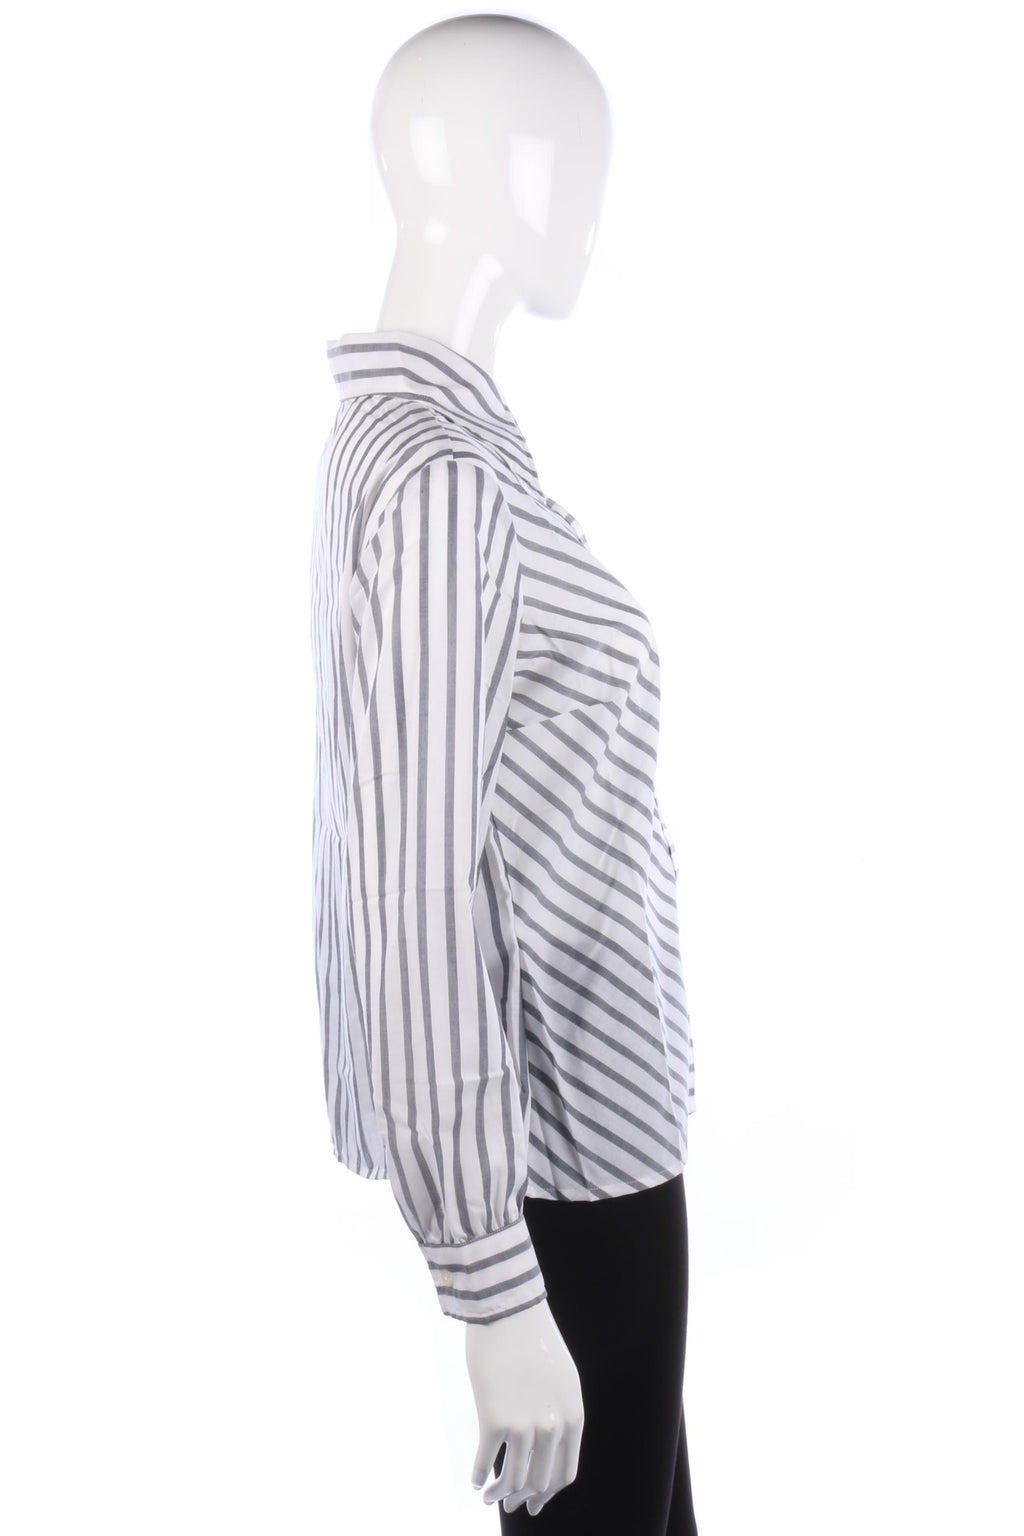 Vintage 1970's Big Collar Shirt White and Grey Striped Cotton size M/L